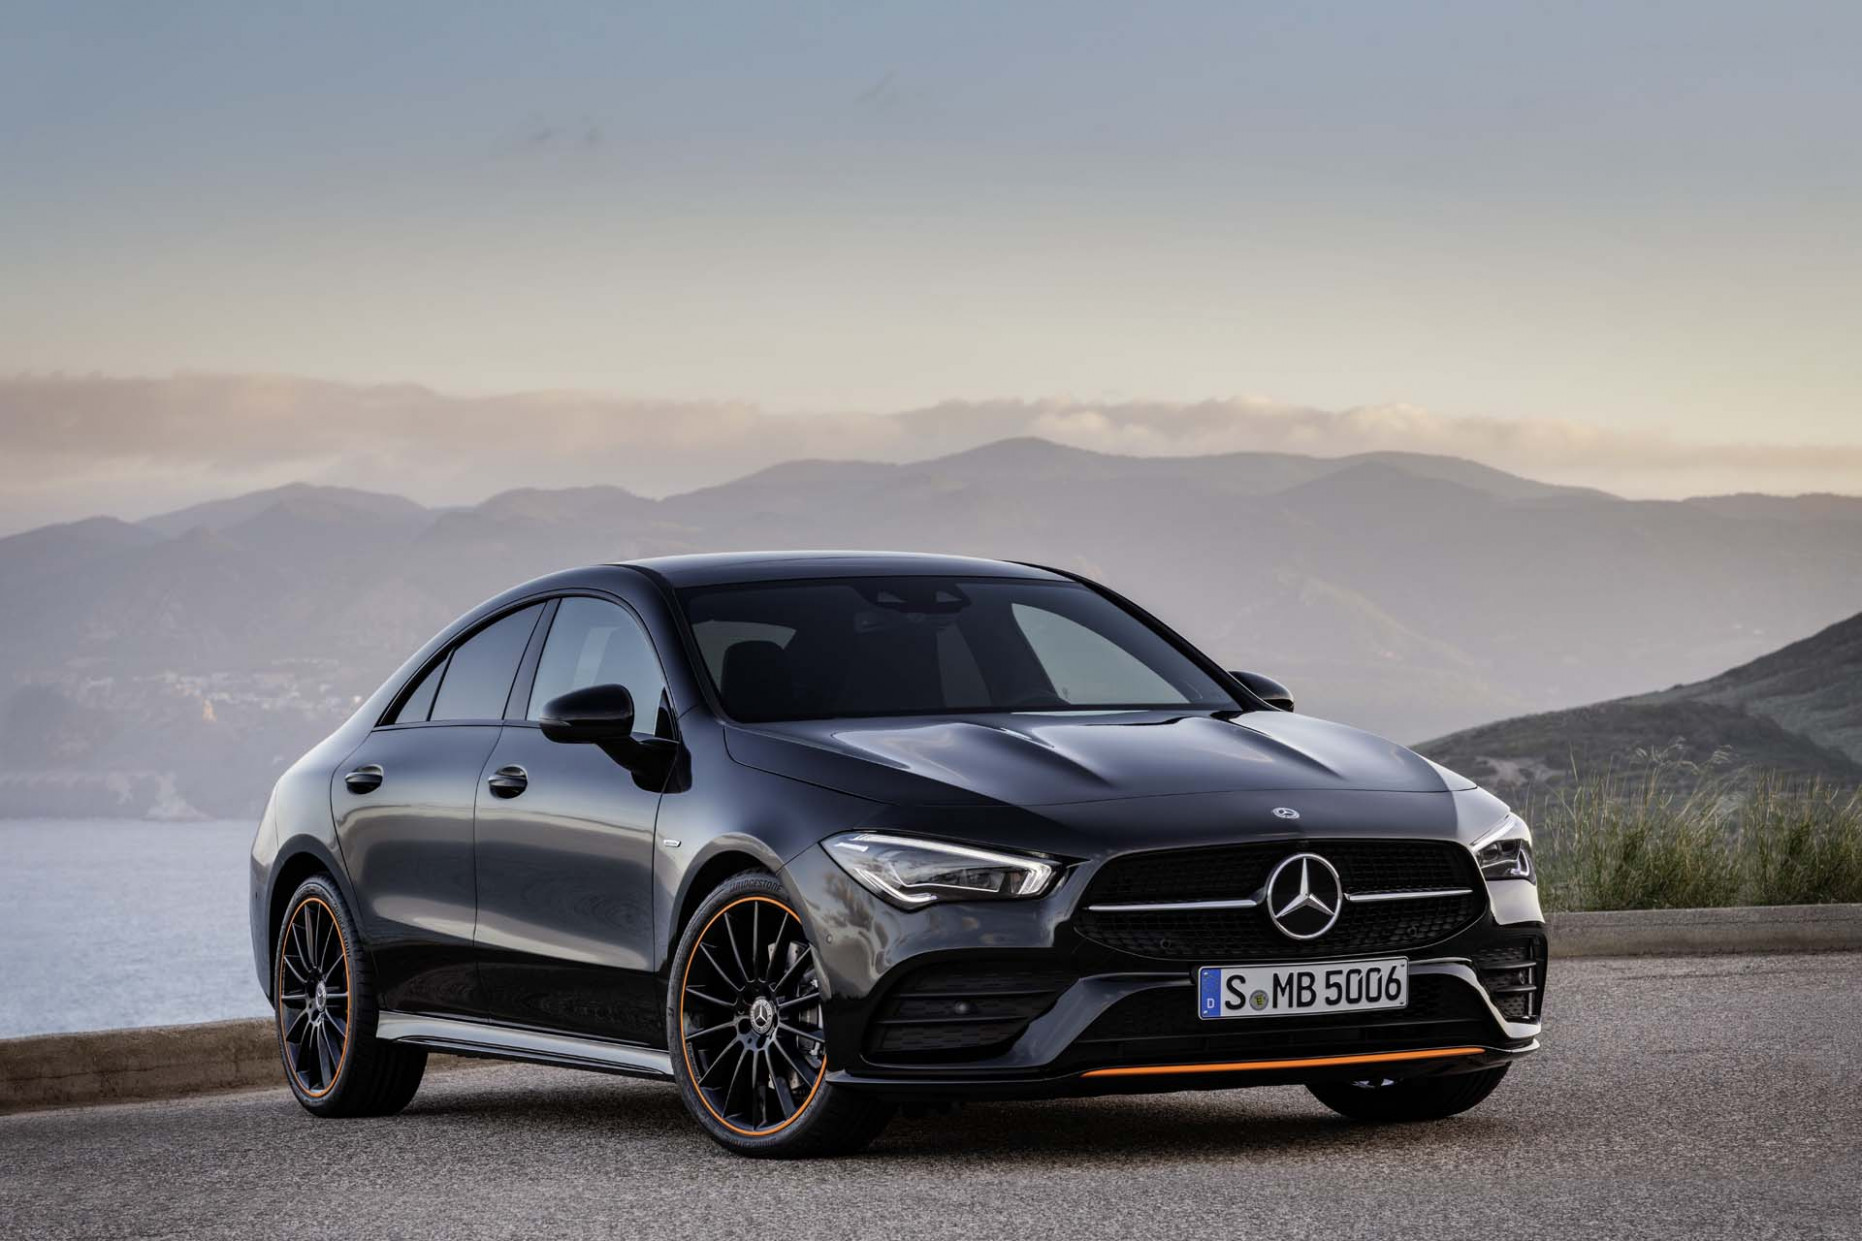 9 Mercedes-Benz CLA Class Review, Ratings, Specs, Prices, and ...